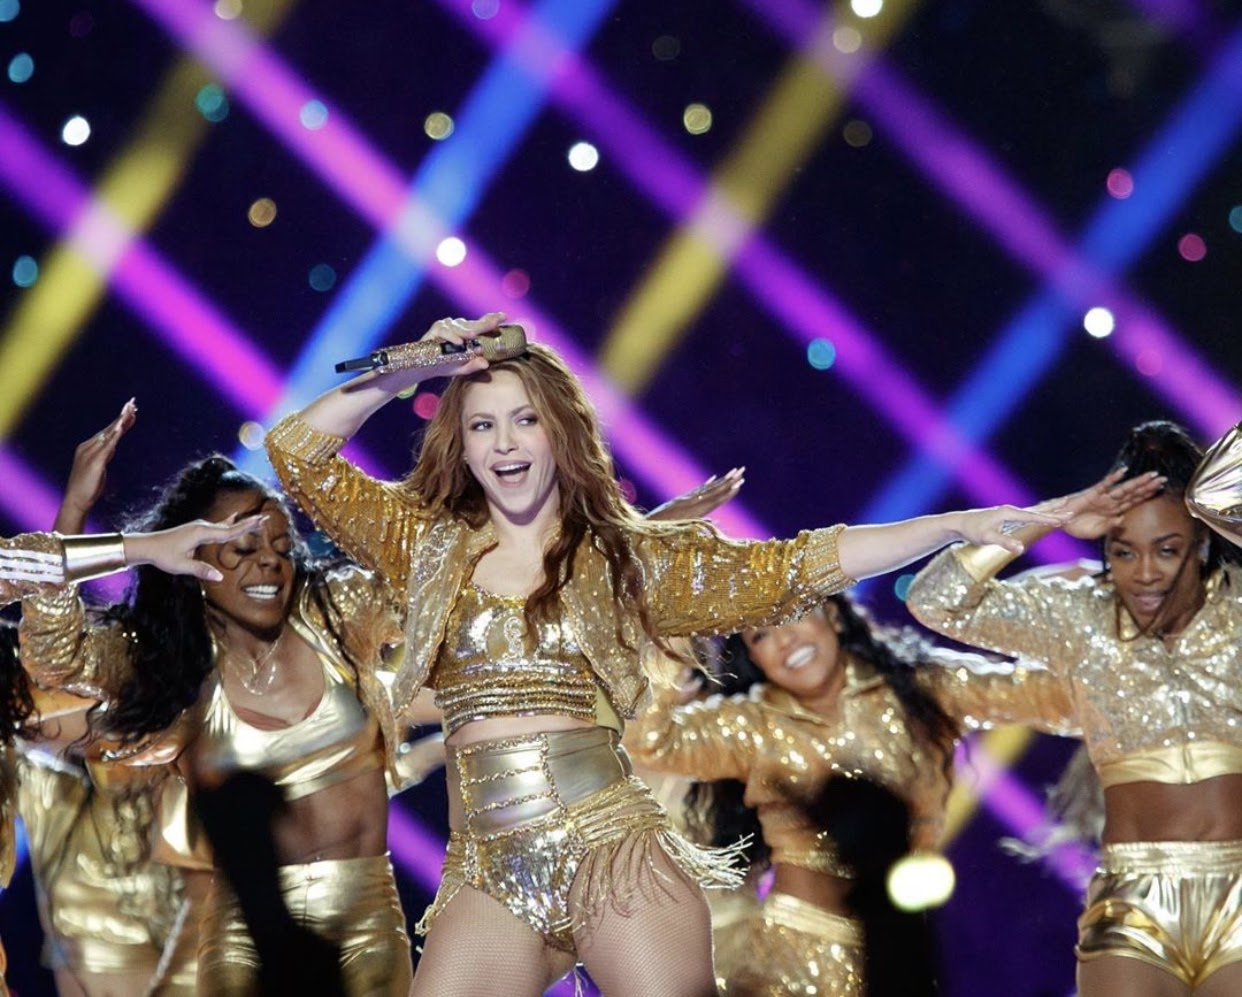 """Shakira and her many backup dancers wear revealing outfits and dance inappropriately in front of a reported 102 million television viewers. Savanna Bresler said she was very disappointed in the halftime performance this year because """"society has been teaching us to act one way when the next minute performers are doing the complete opposite of what society told us to do."""